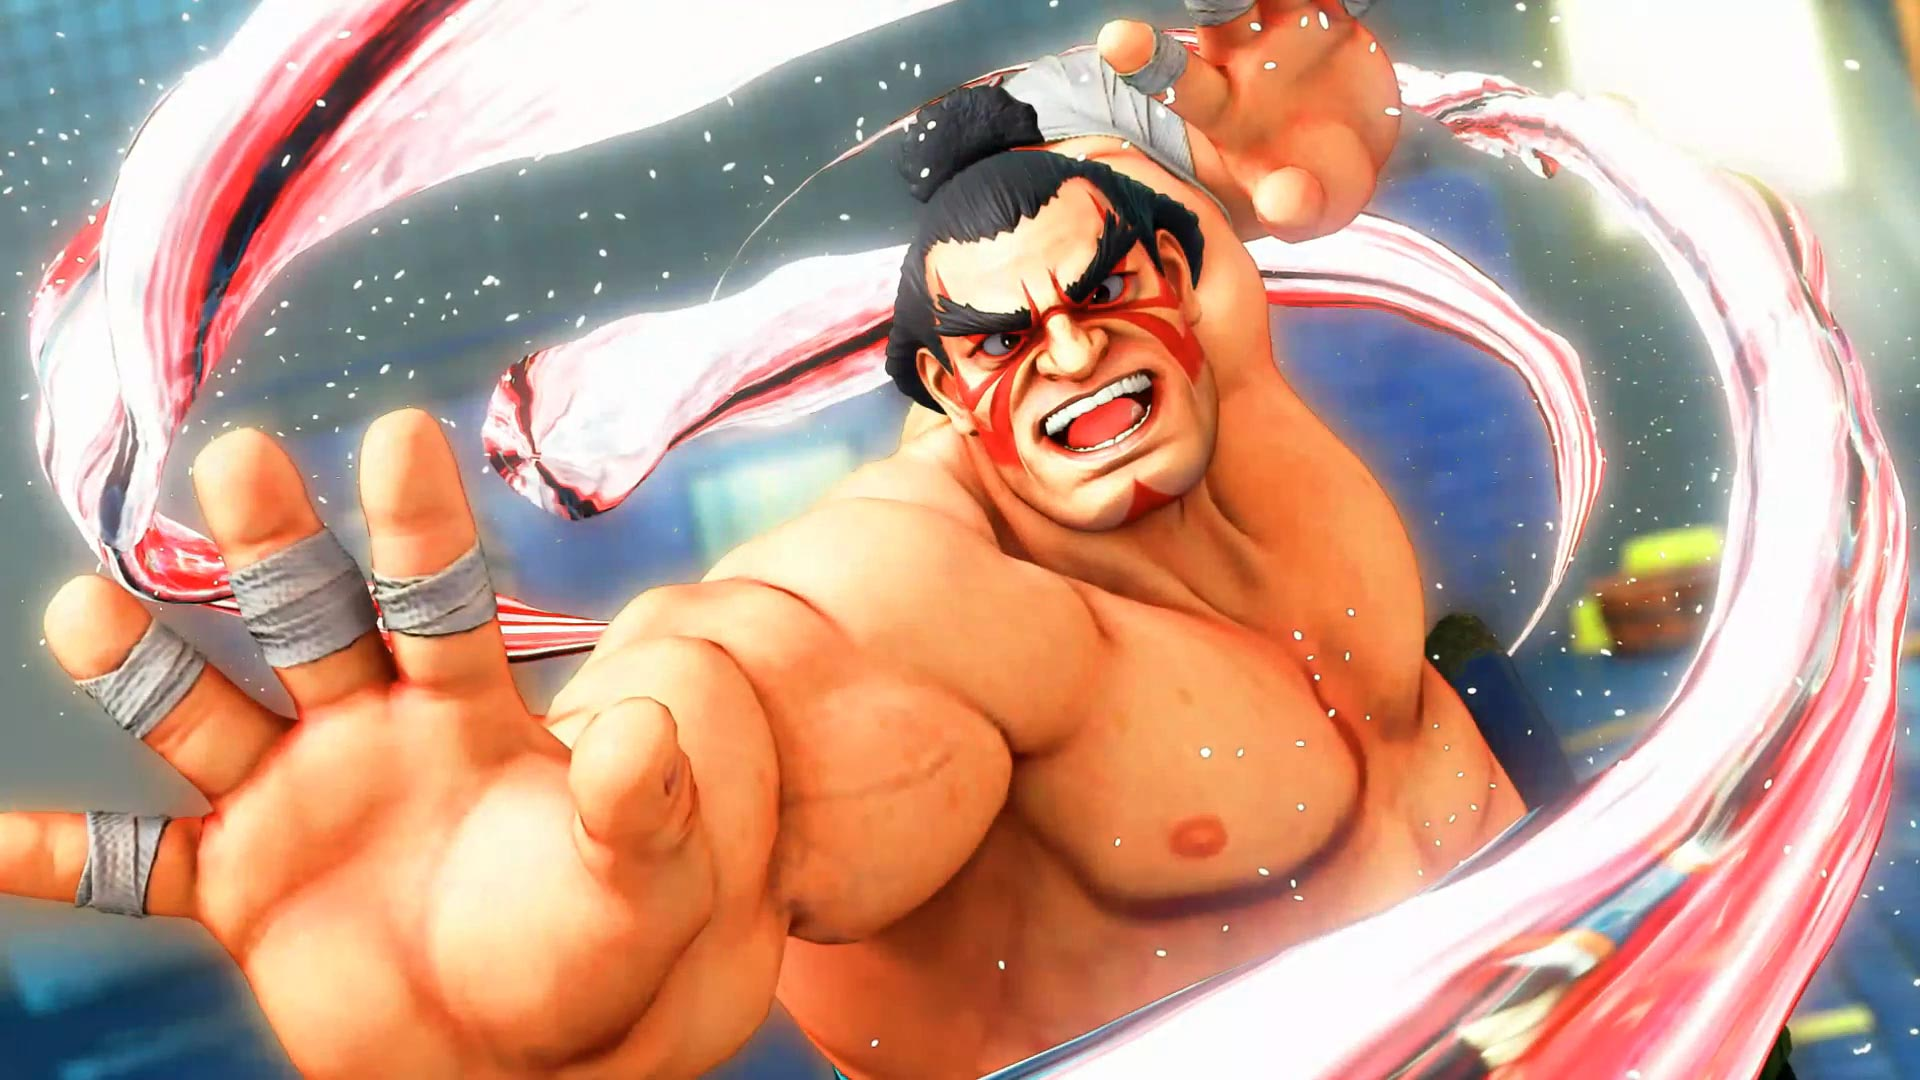 Street Fighter 5 leaked gallery of E. Honda, Lucia and Poison 30 out of 35 image gallery